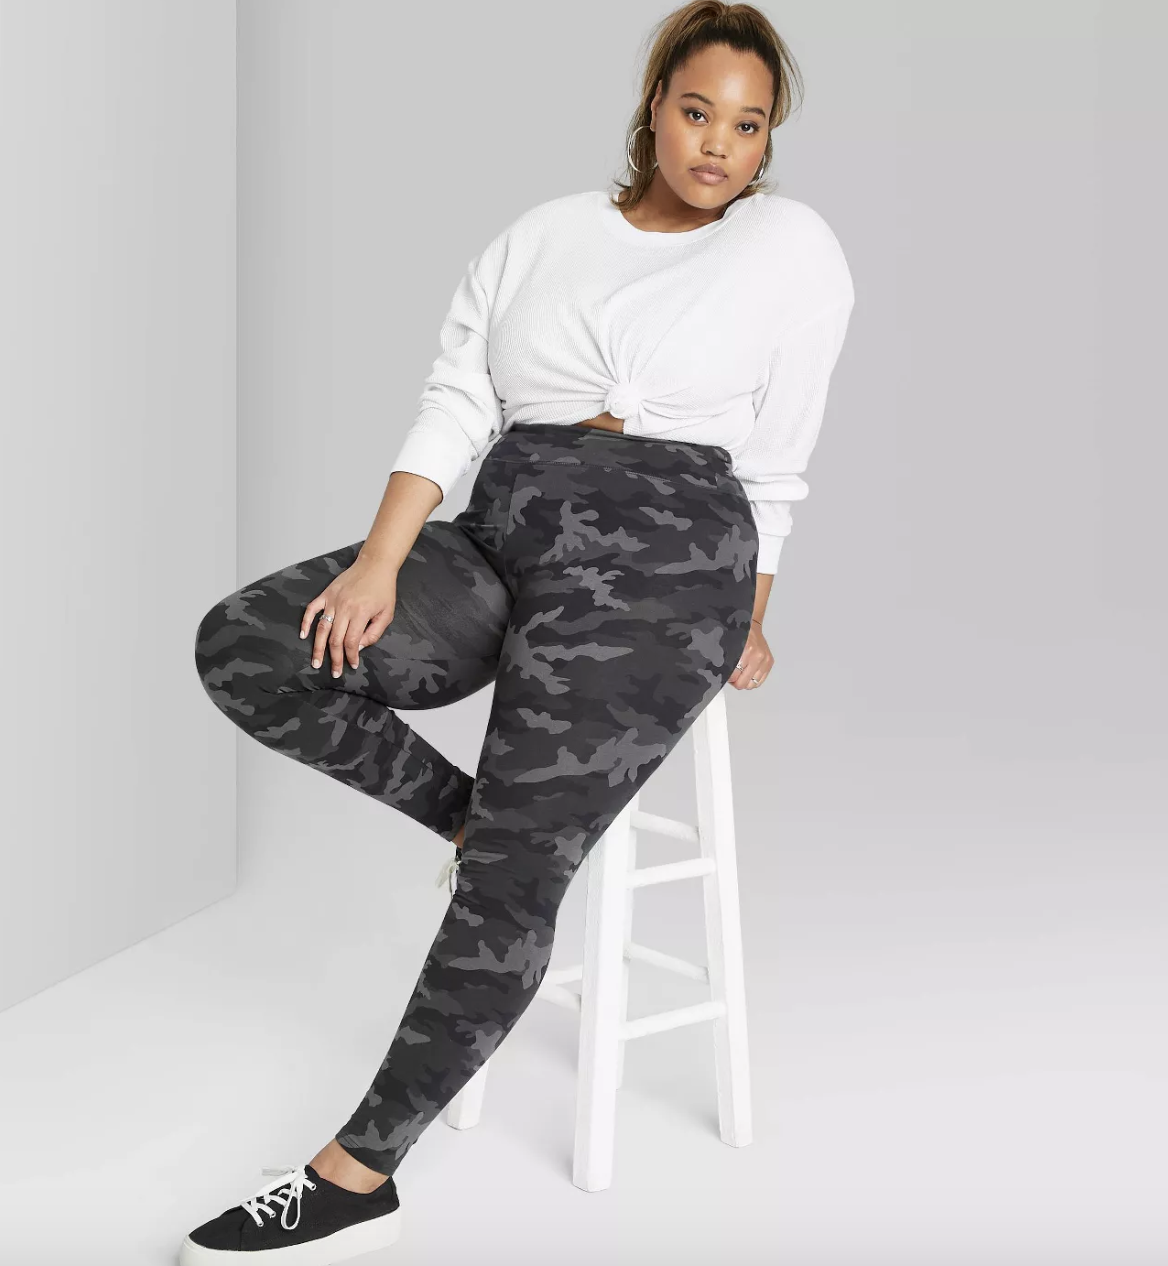 model wearing the camo leggings